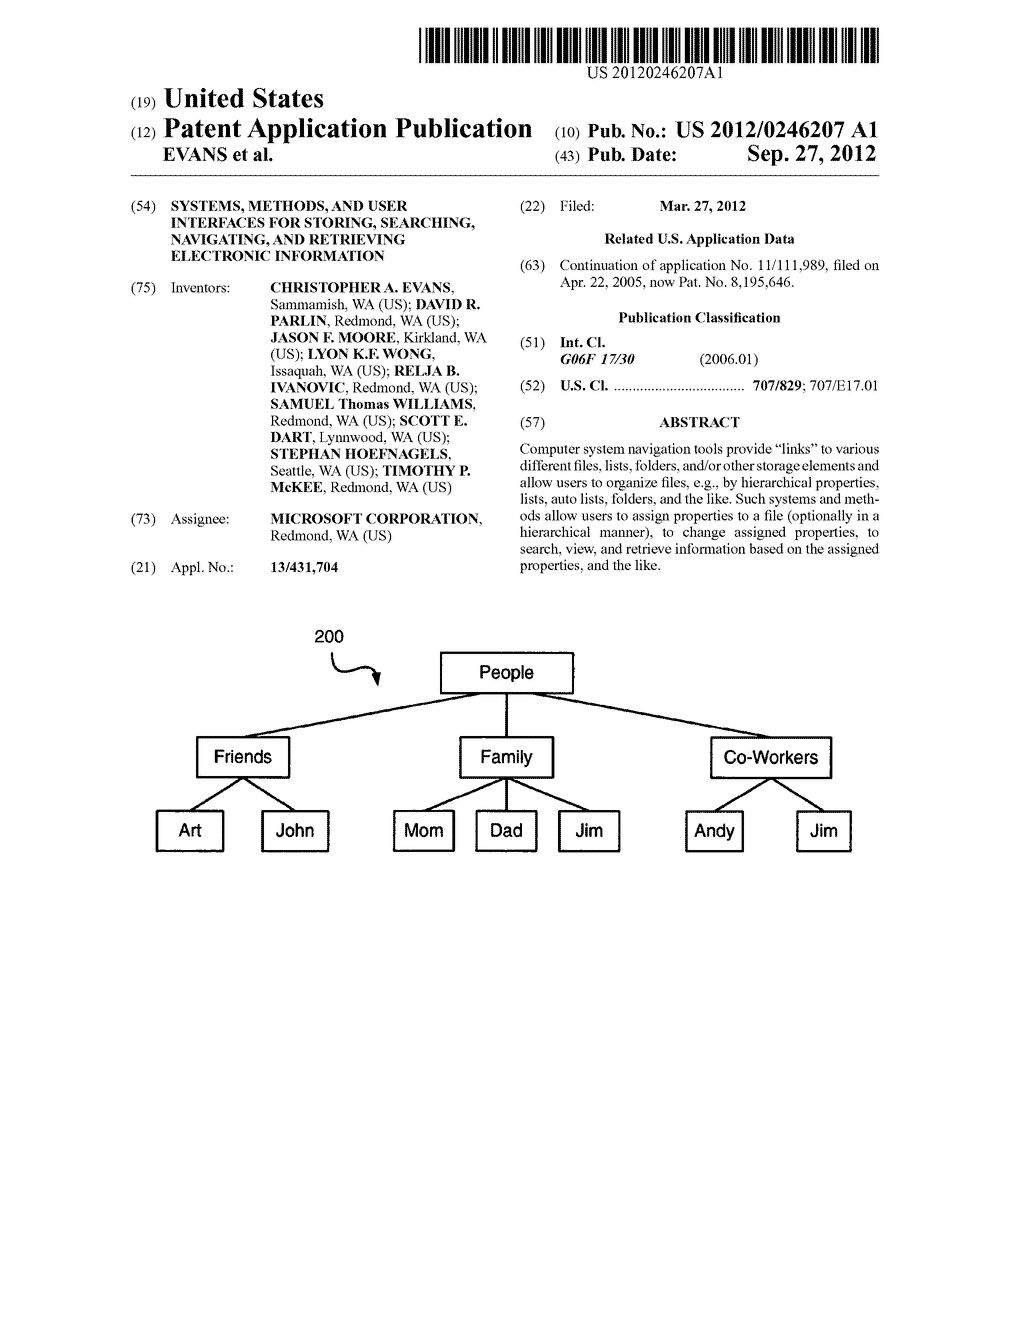 SYSTEMS, METHODS, AND USER INTERFACES FOR STORING, SEARCHING, NAVIGATING,     AND RETRIEVING ELECTRONIC INFORMATION - diagram, schematic, and image 01